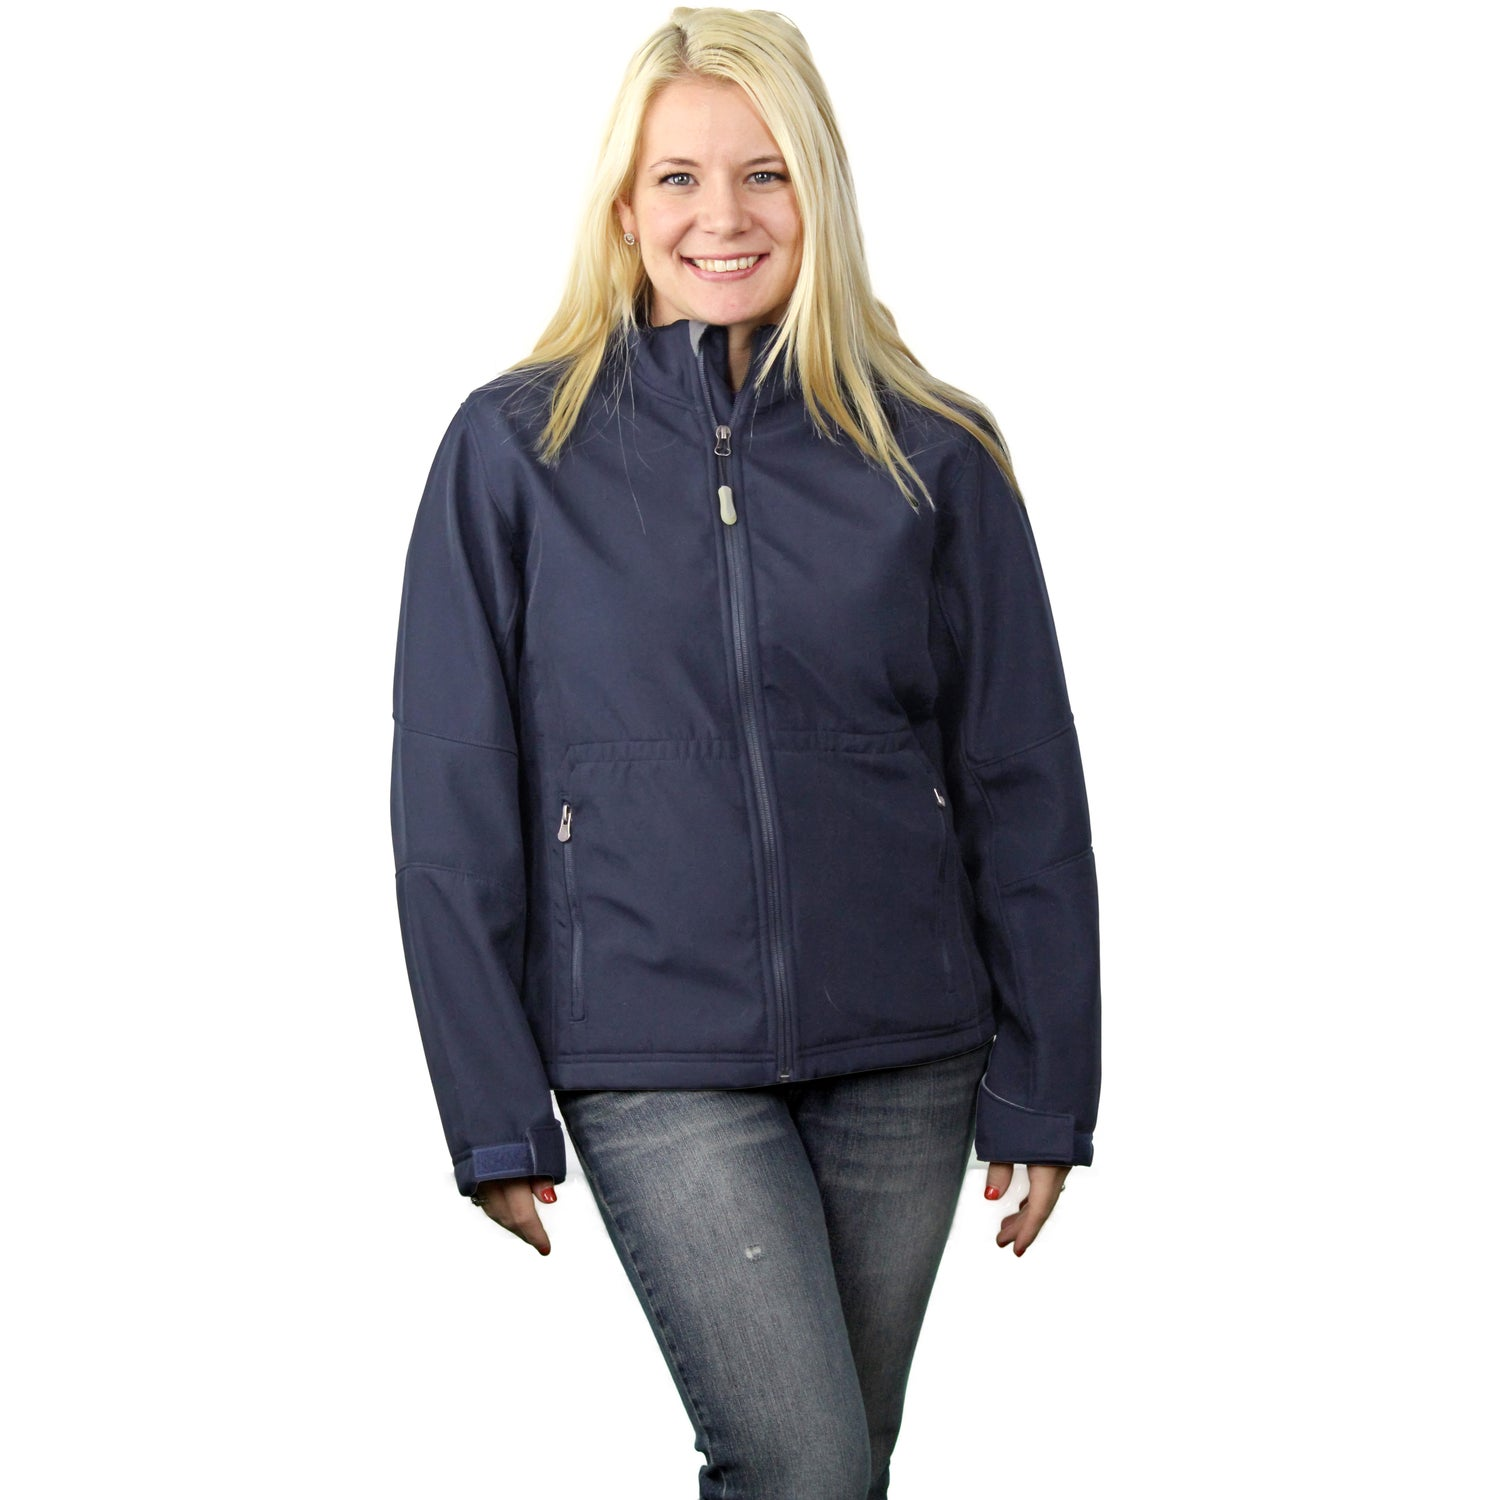 Custom jackets for women